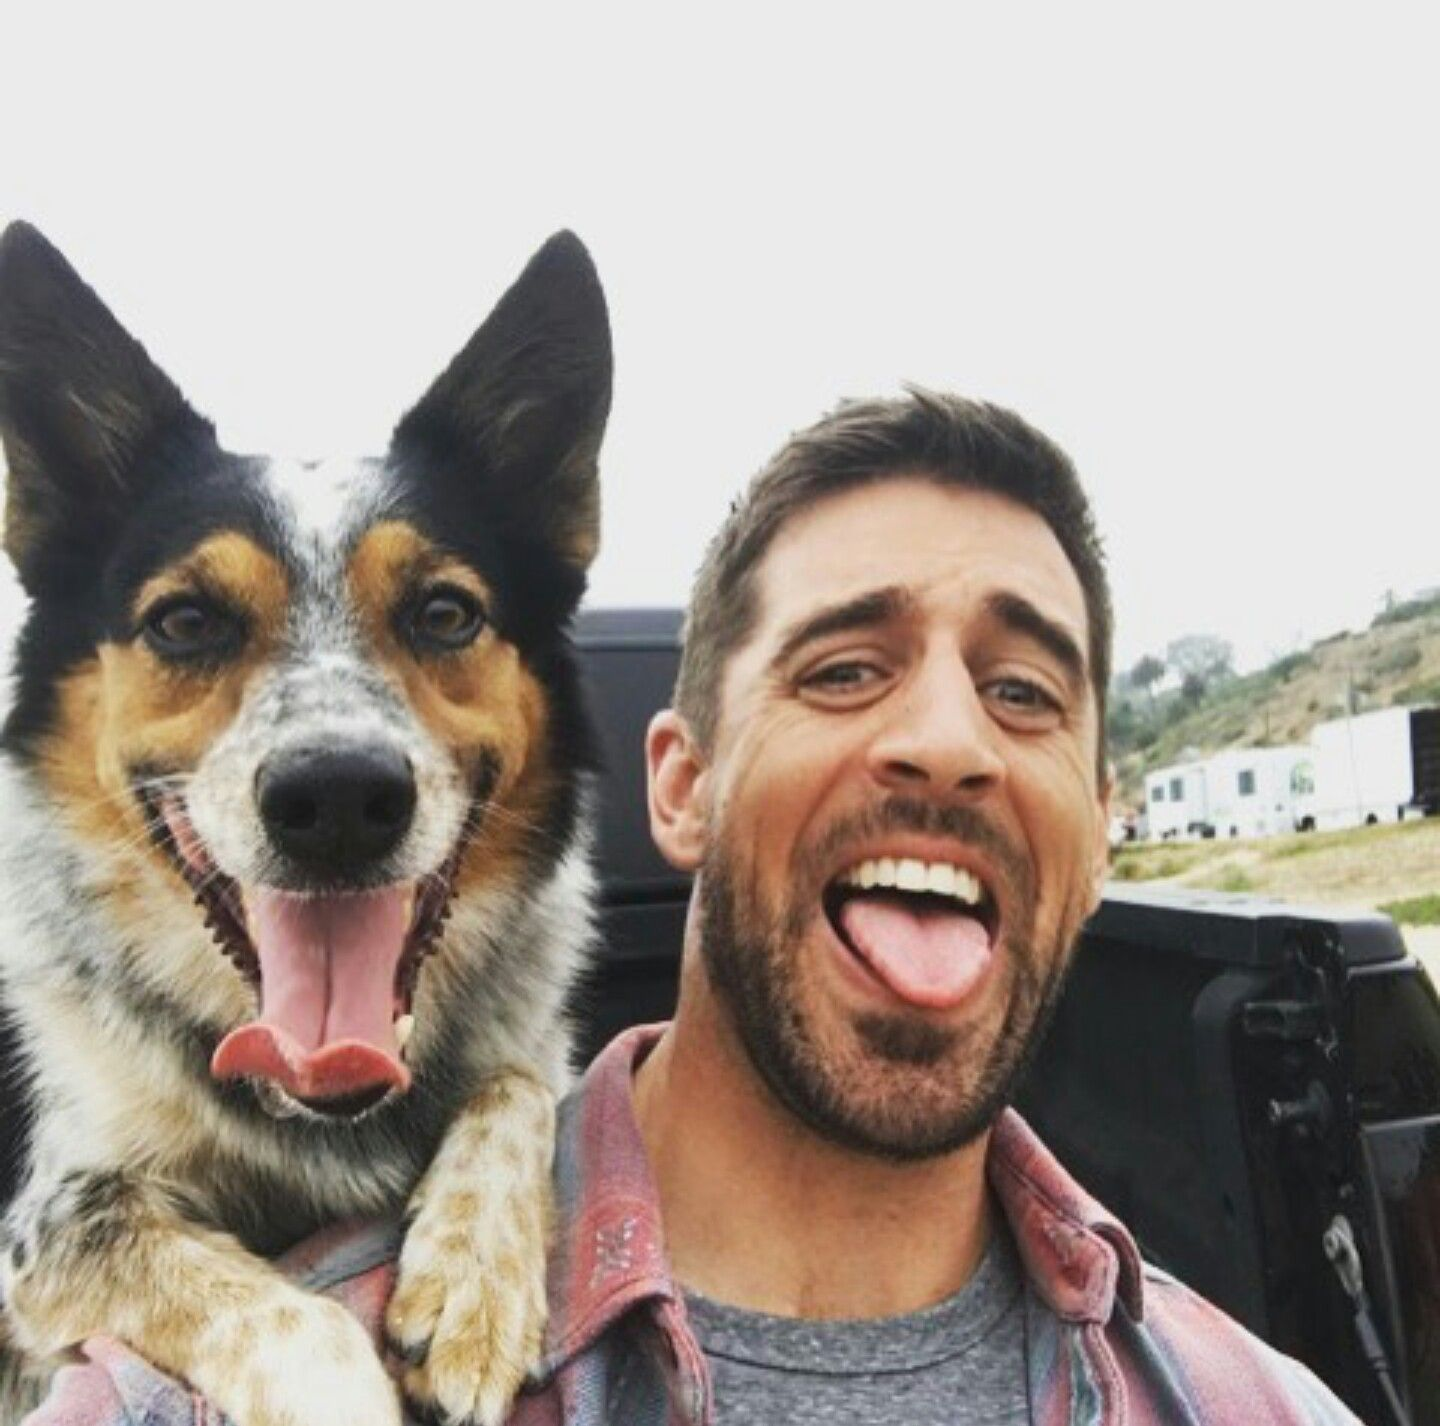 Aaron Rodgers With His State Farm Commercial Costar Aaron Rodgers Rodgers Green Bay Go Packers